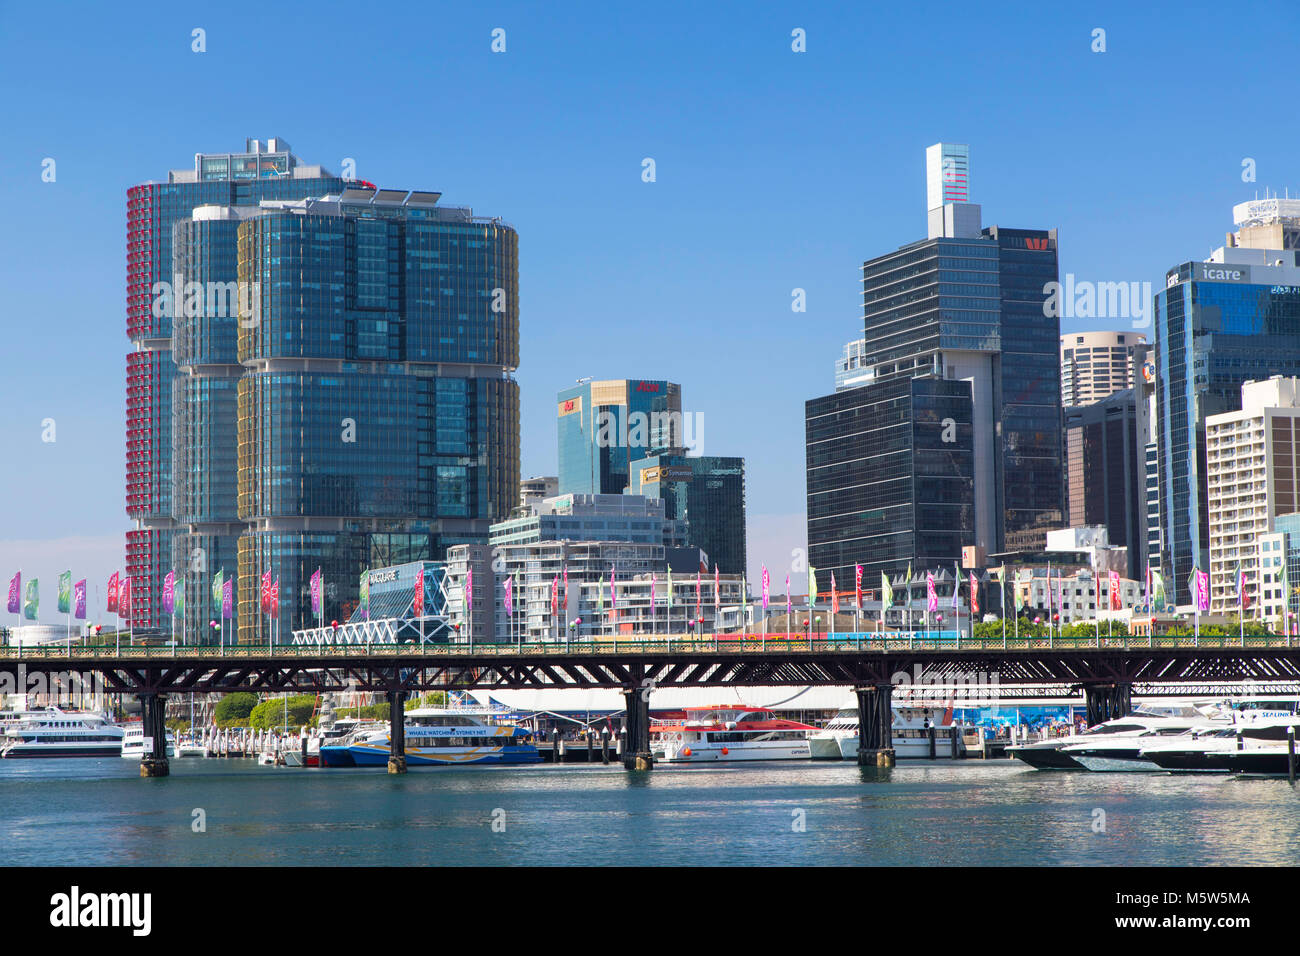 Barangaroo und Darling Harbour, Sydney, New South Wales, Australien Stockbild